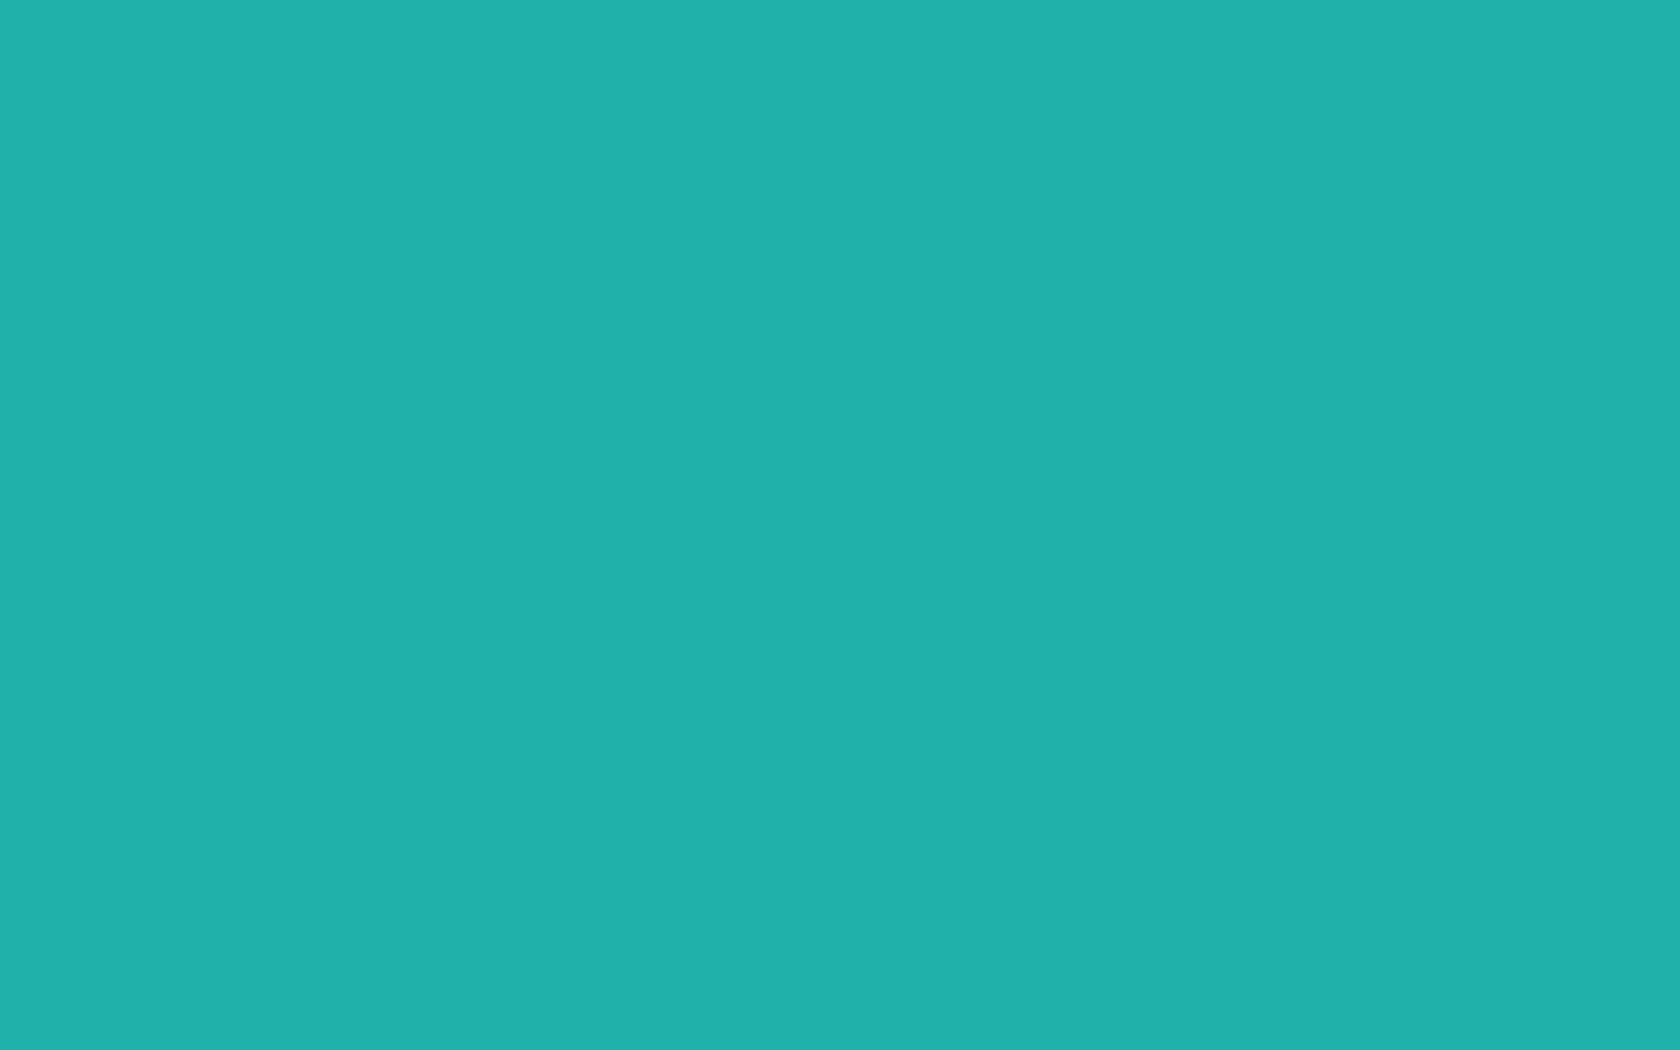 1680x1050 Light Sea Green Solid Color Background